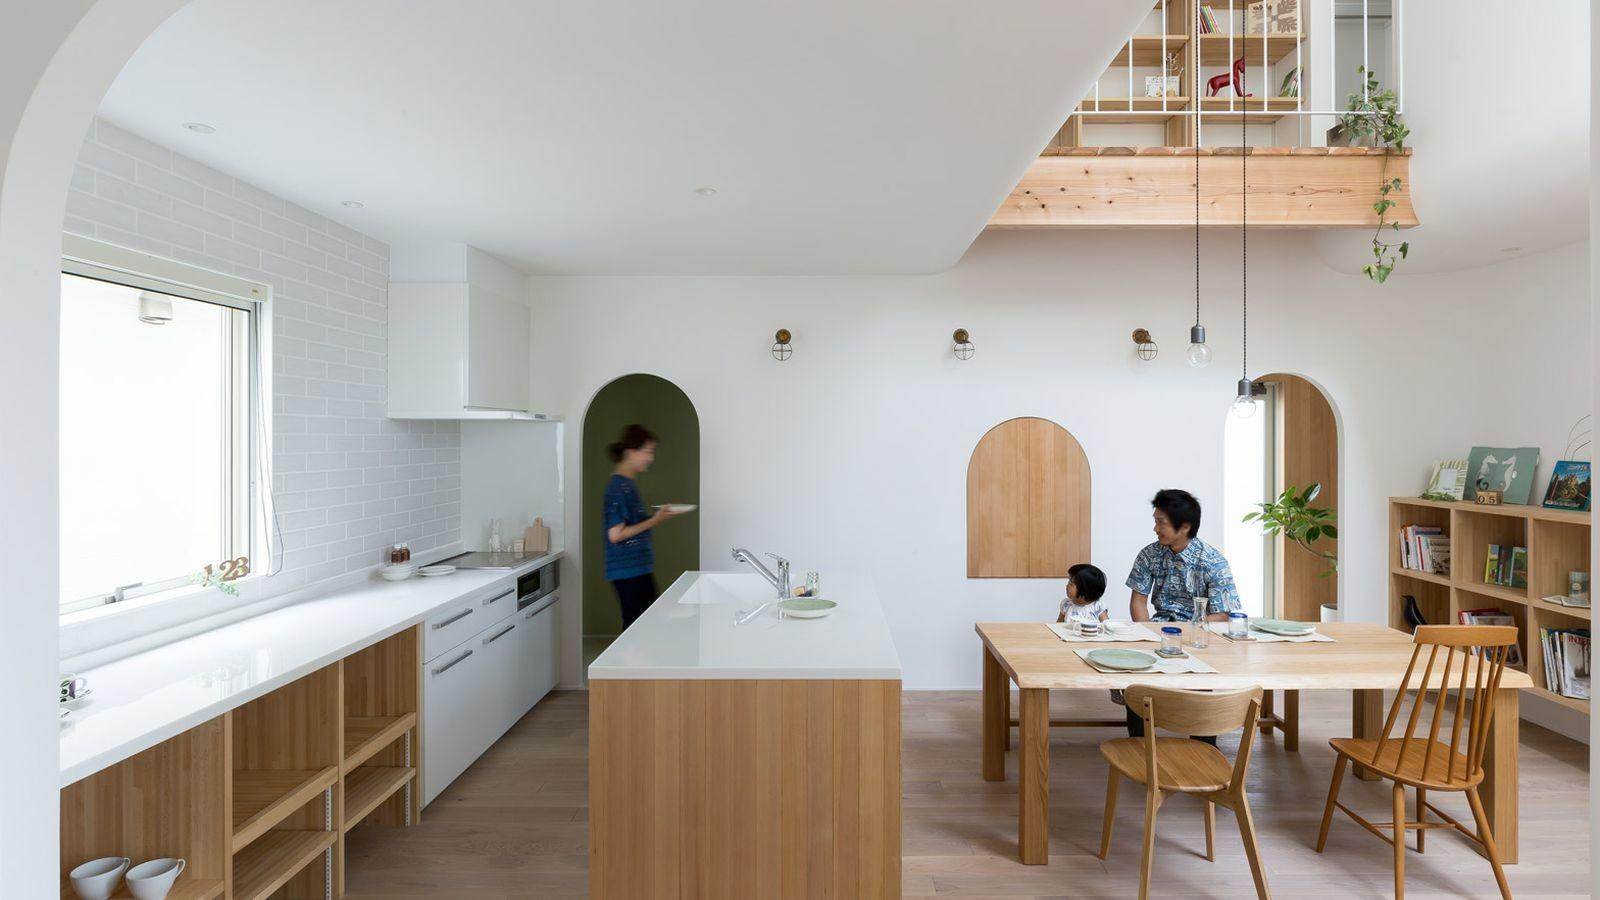 Compact Home Japan Looks Enchanting Arches Curves